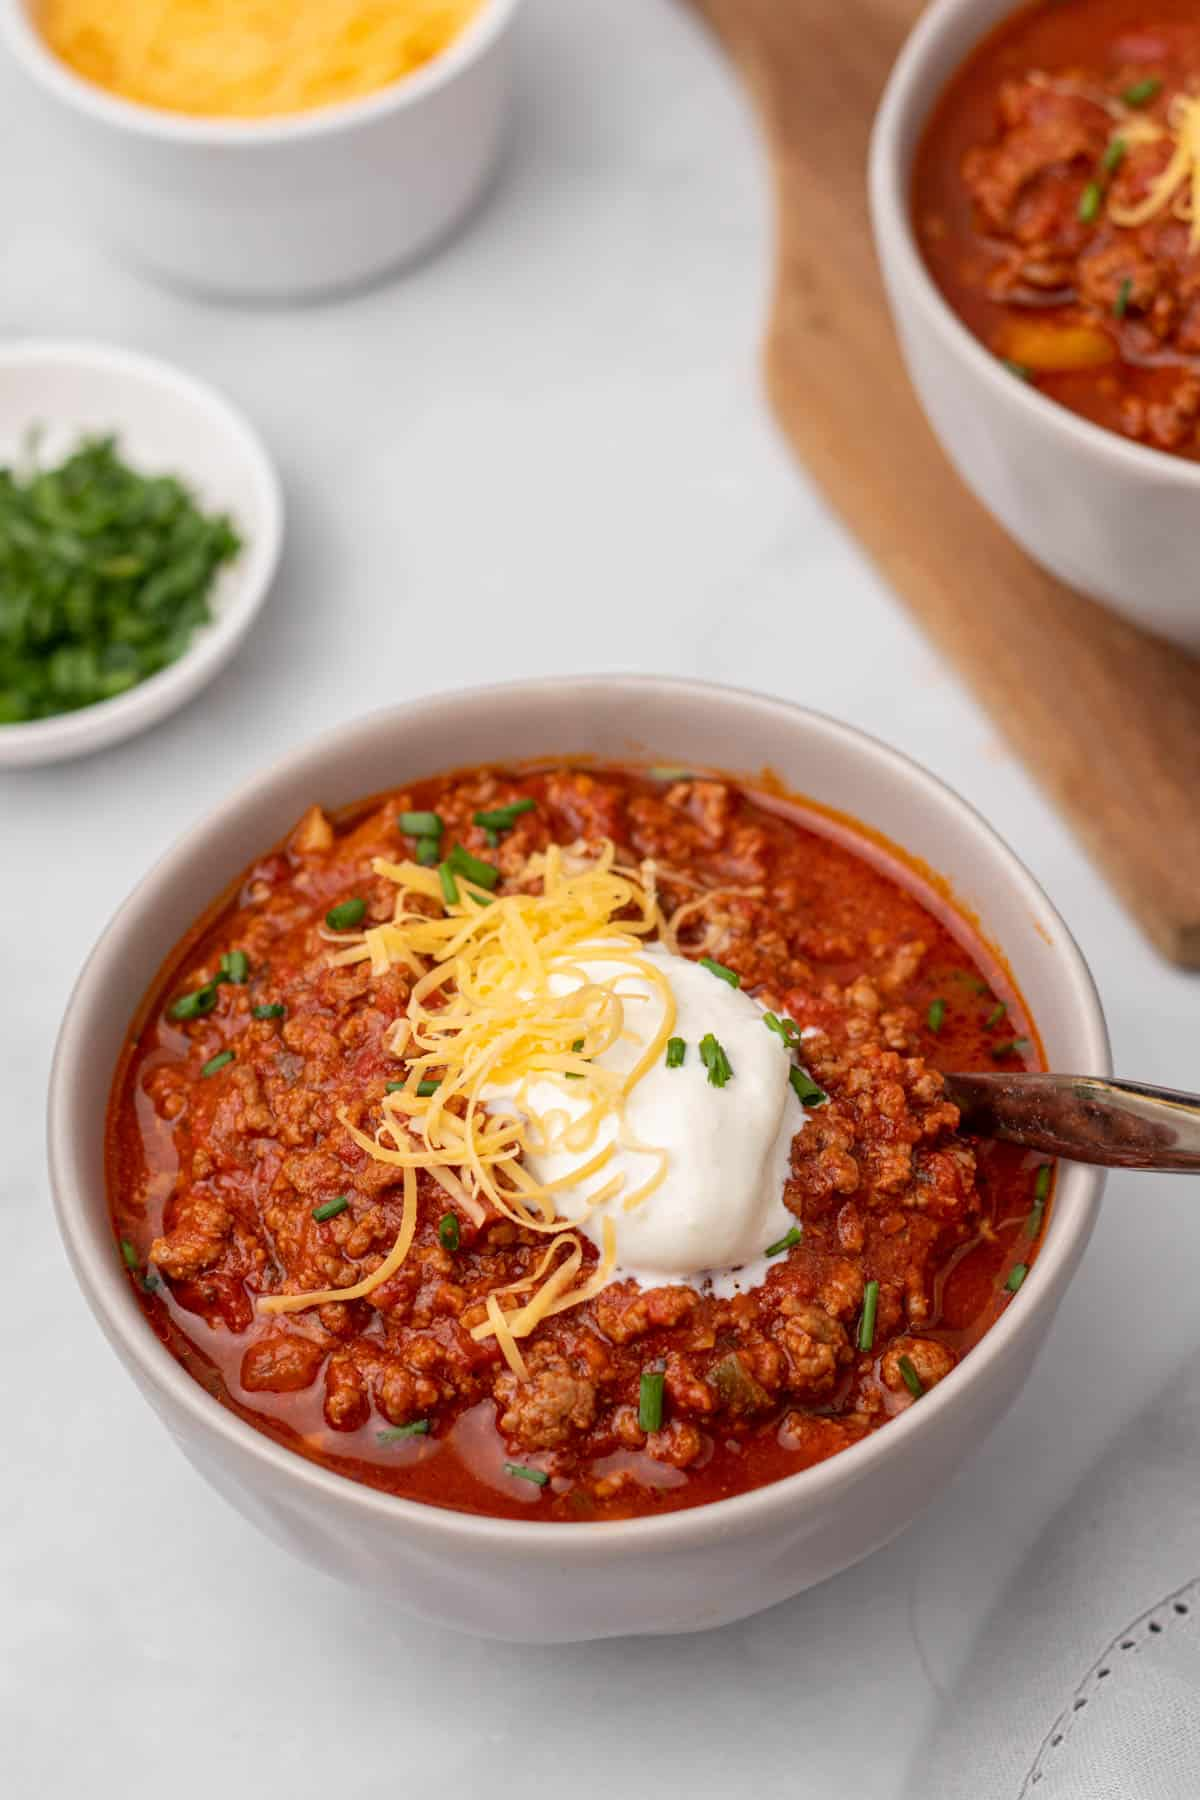 Beanless chili in a white bowl topped with sour cream, shredded cheese, and green onion